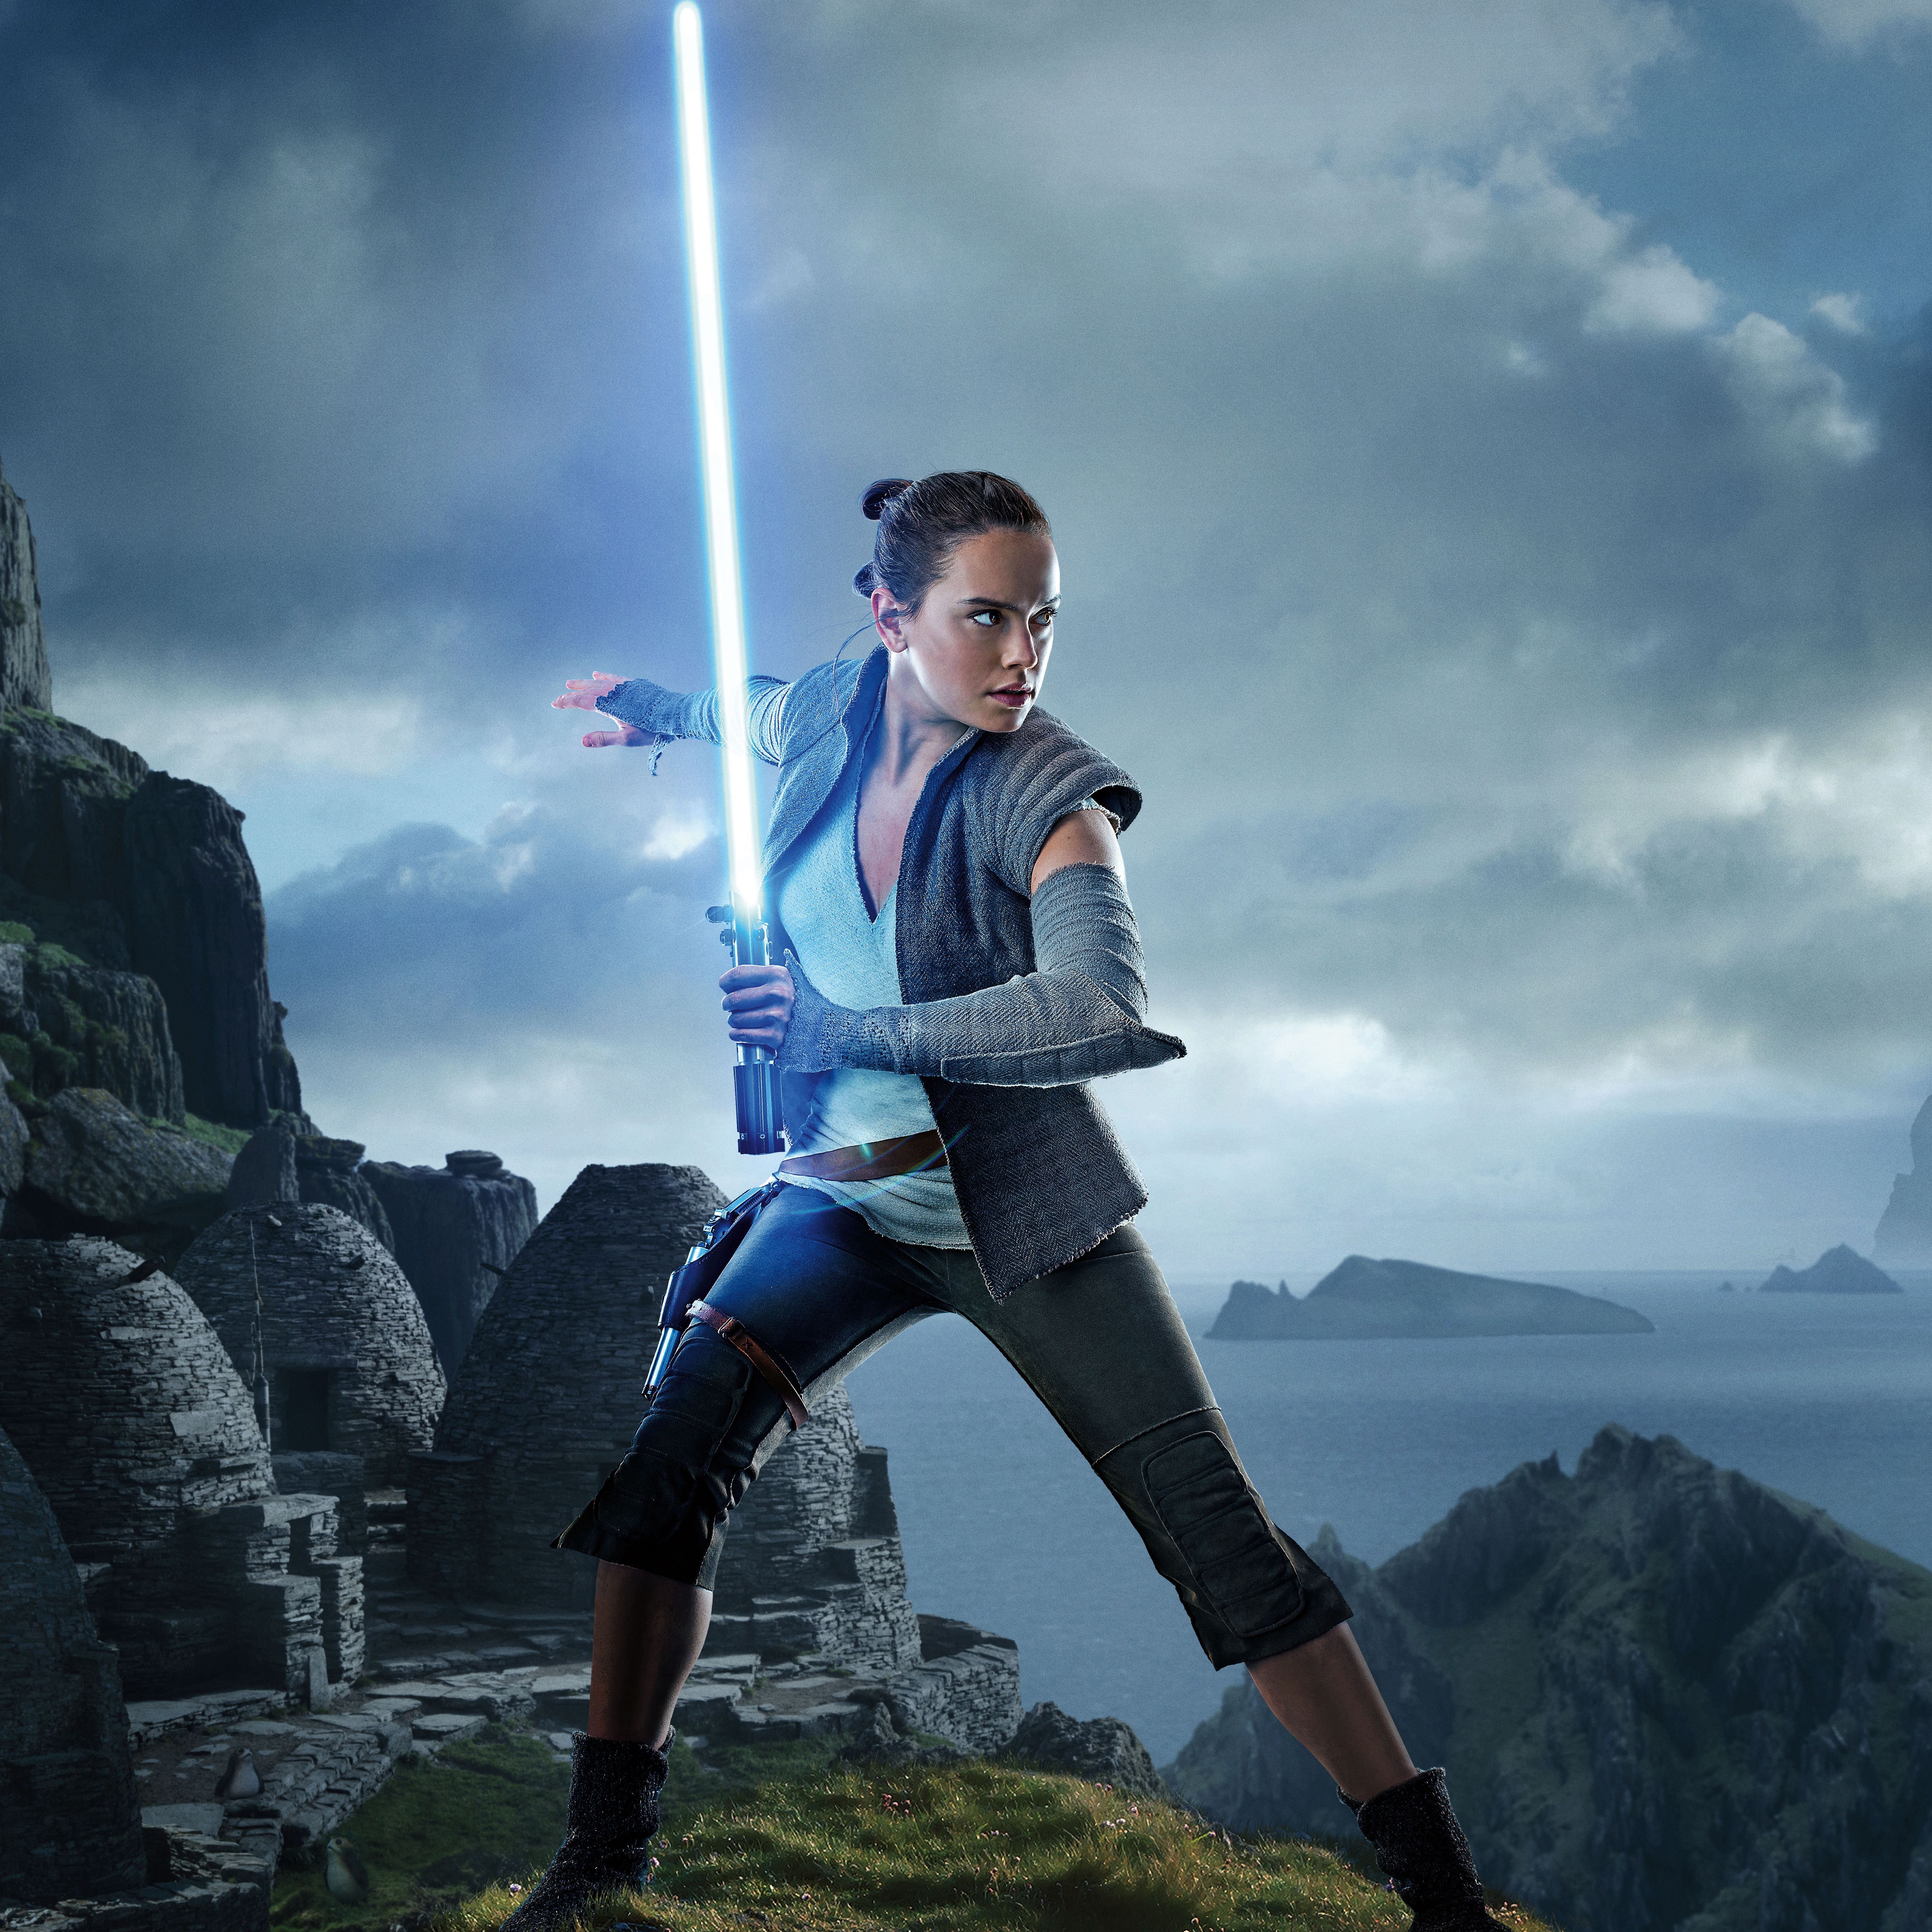 Rey Star Wars Wallpapers Top Free Rey Star Wars Backgrounds Wallpaperaccess